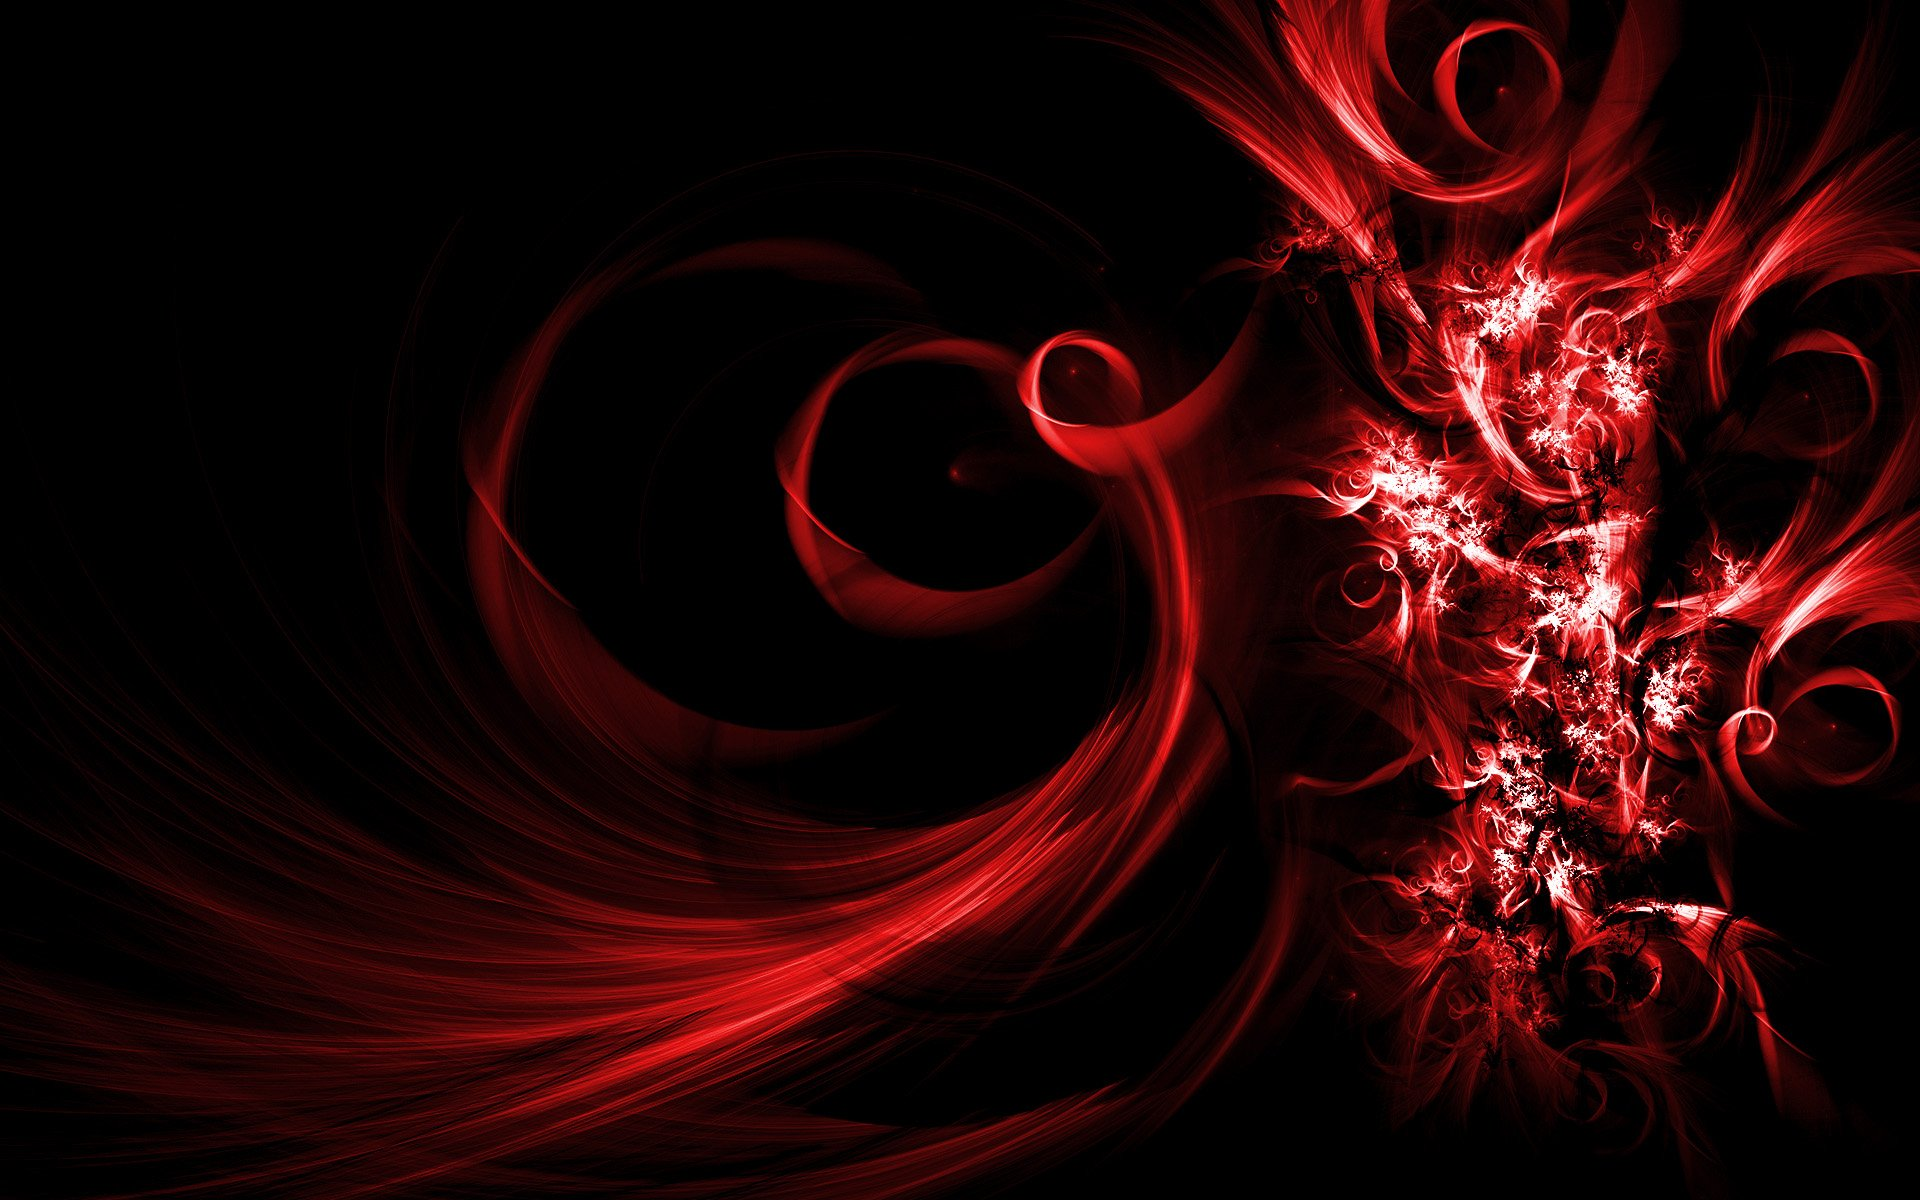 Red Iphone Wallpaper Hd Bing Images Red Wallpaper Pinterest 1920x1200